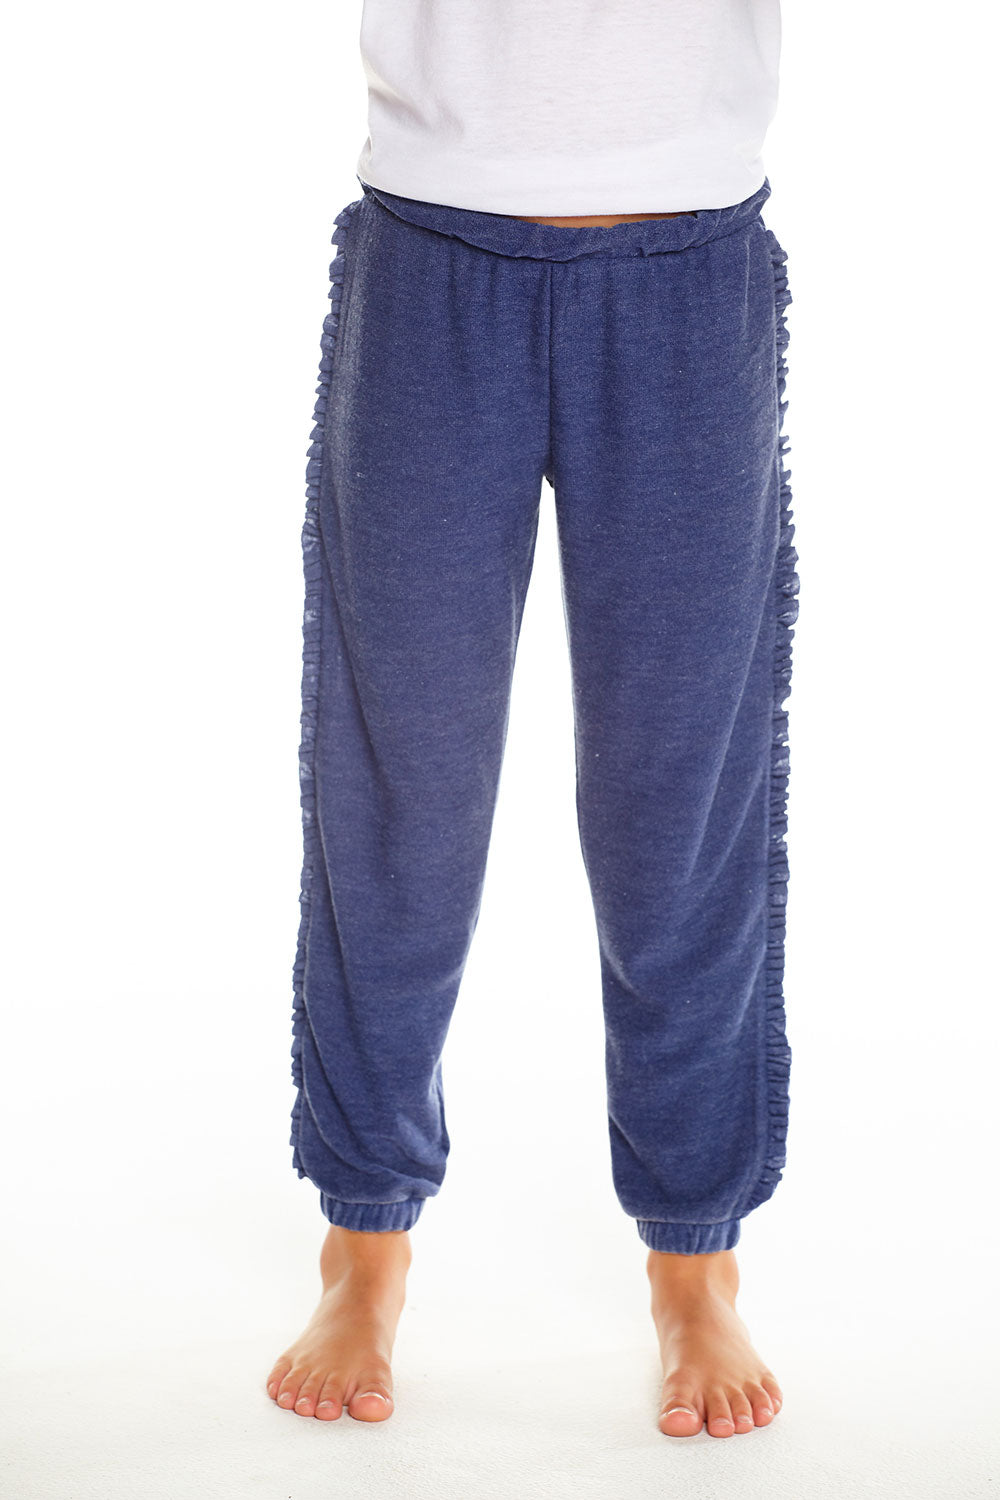 Cozy Knit Slouchy Jogger W/ Ruffle Sides, GIRLS, chaserbrand.com,chaser clothing,chaser apparel,chaser los angeles